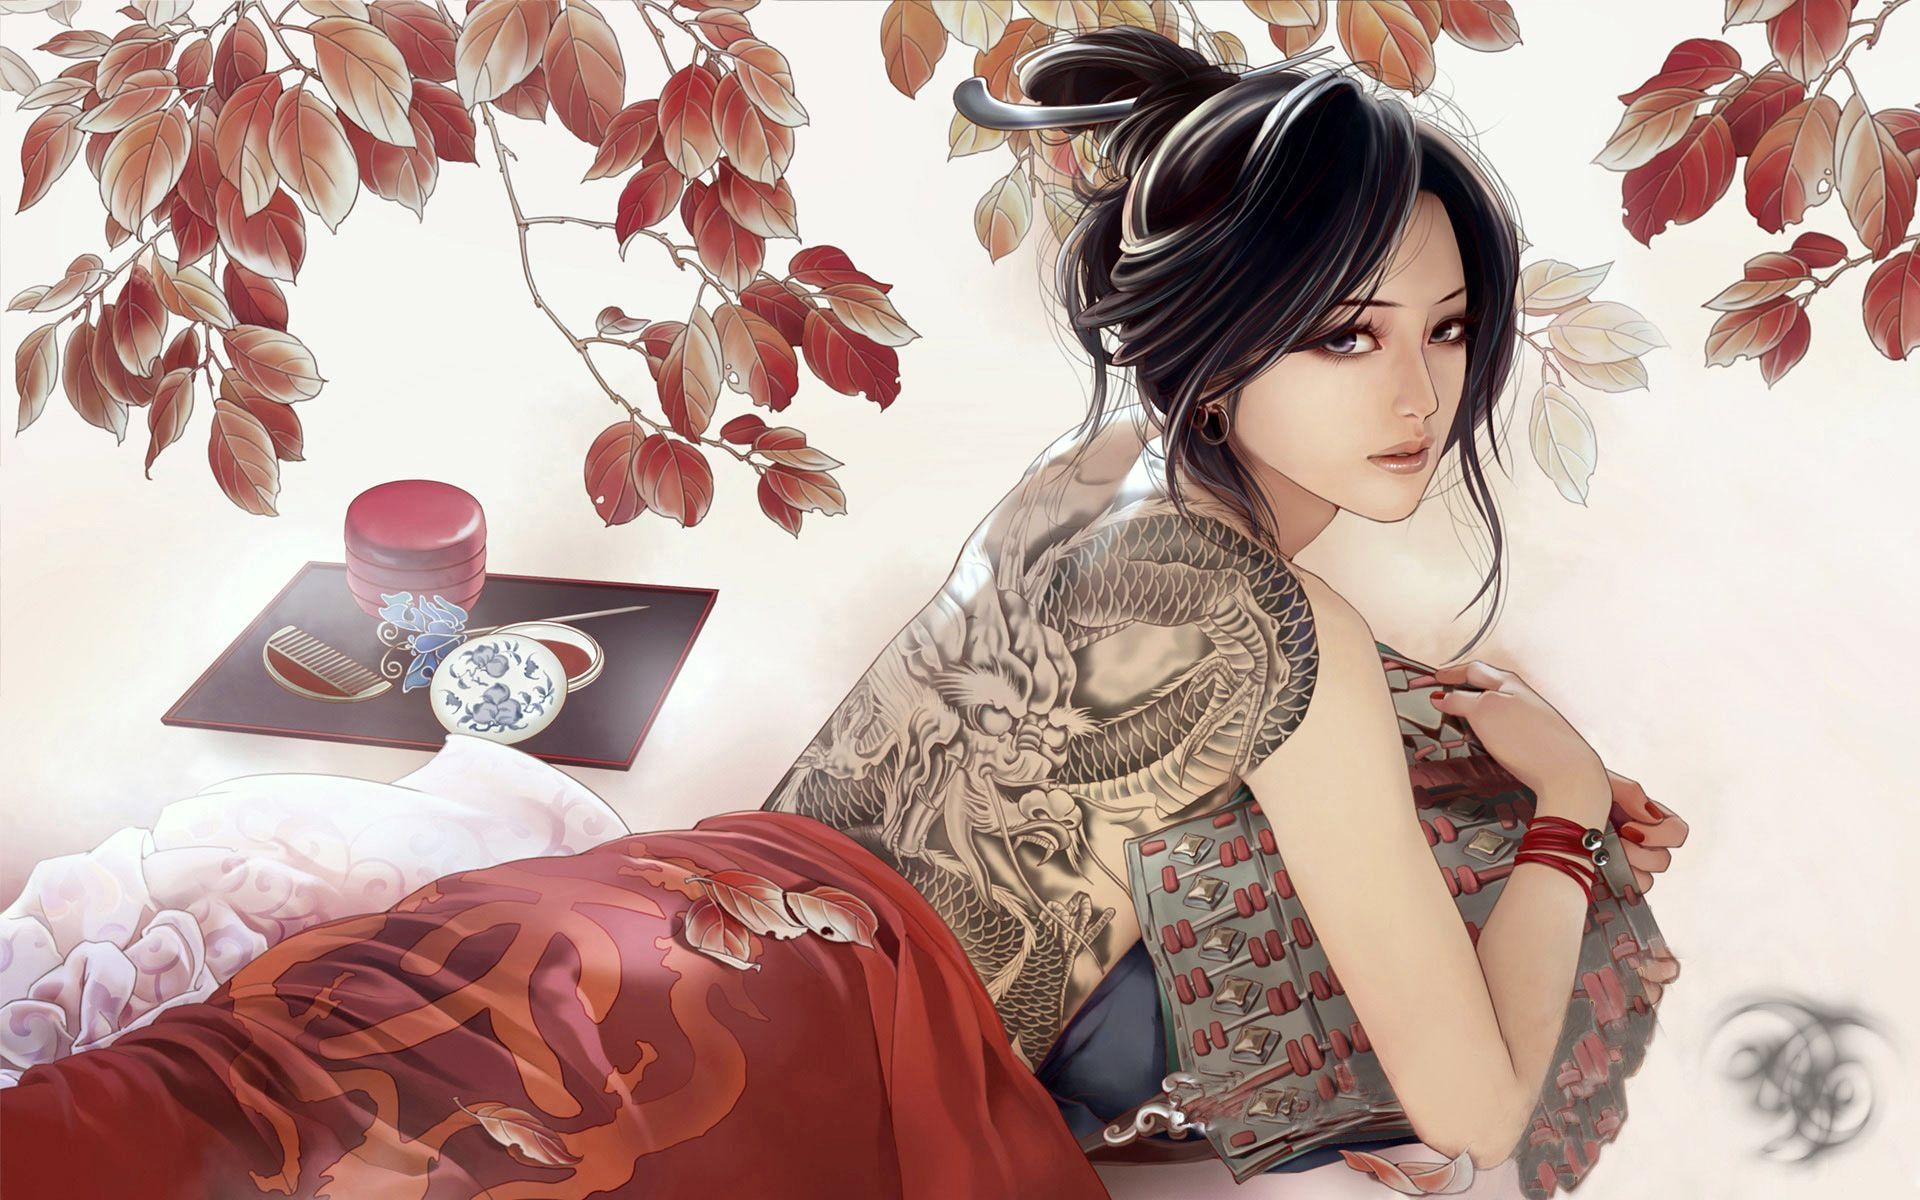 Desktop Wallpaper Memoirs Of A Geisha Anime Girls With Tattoos